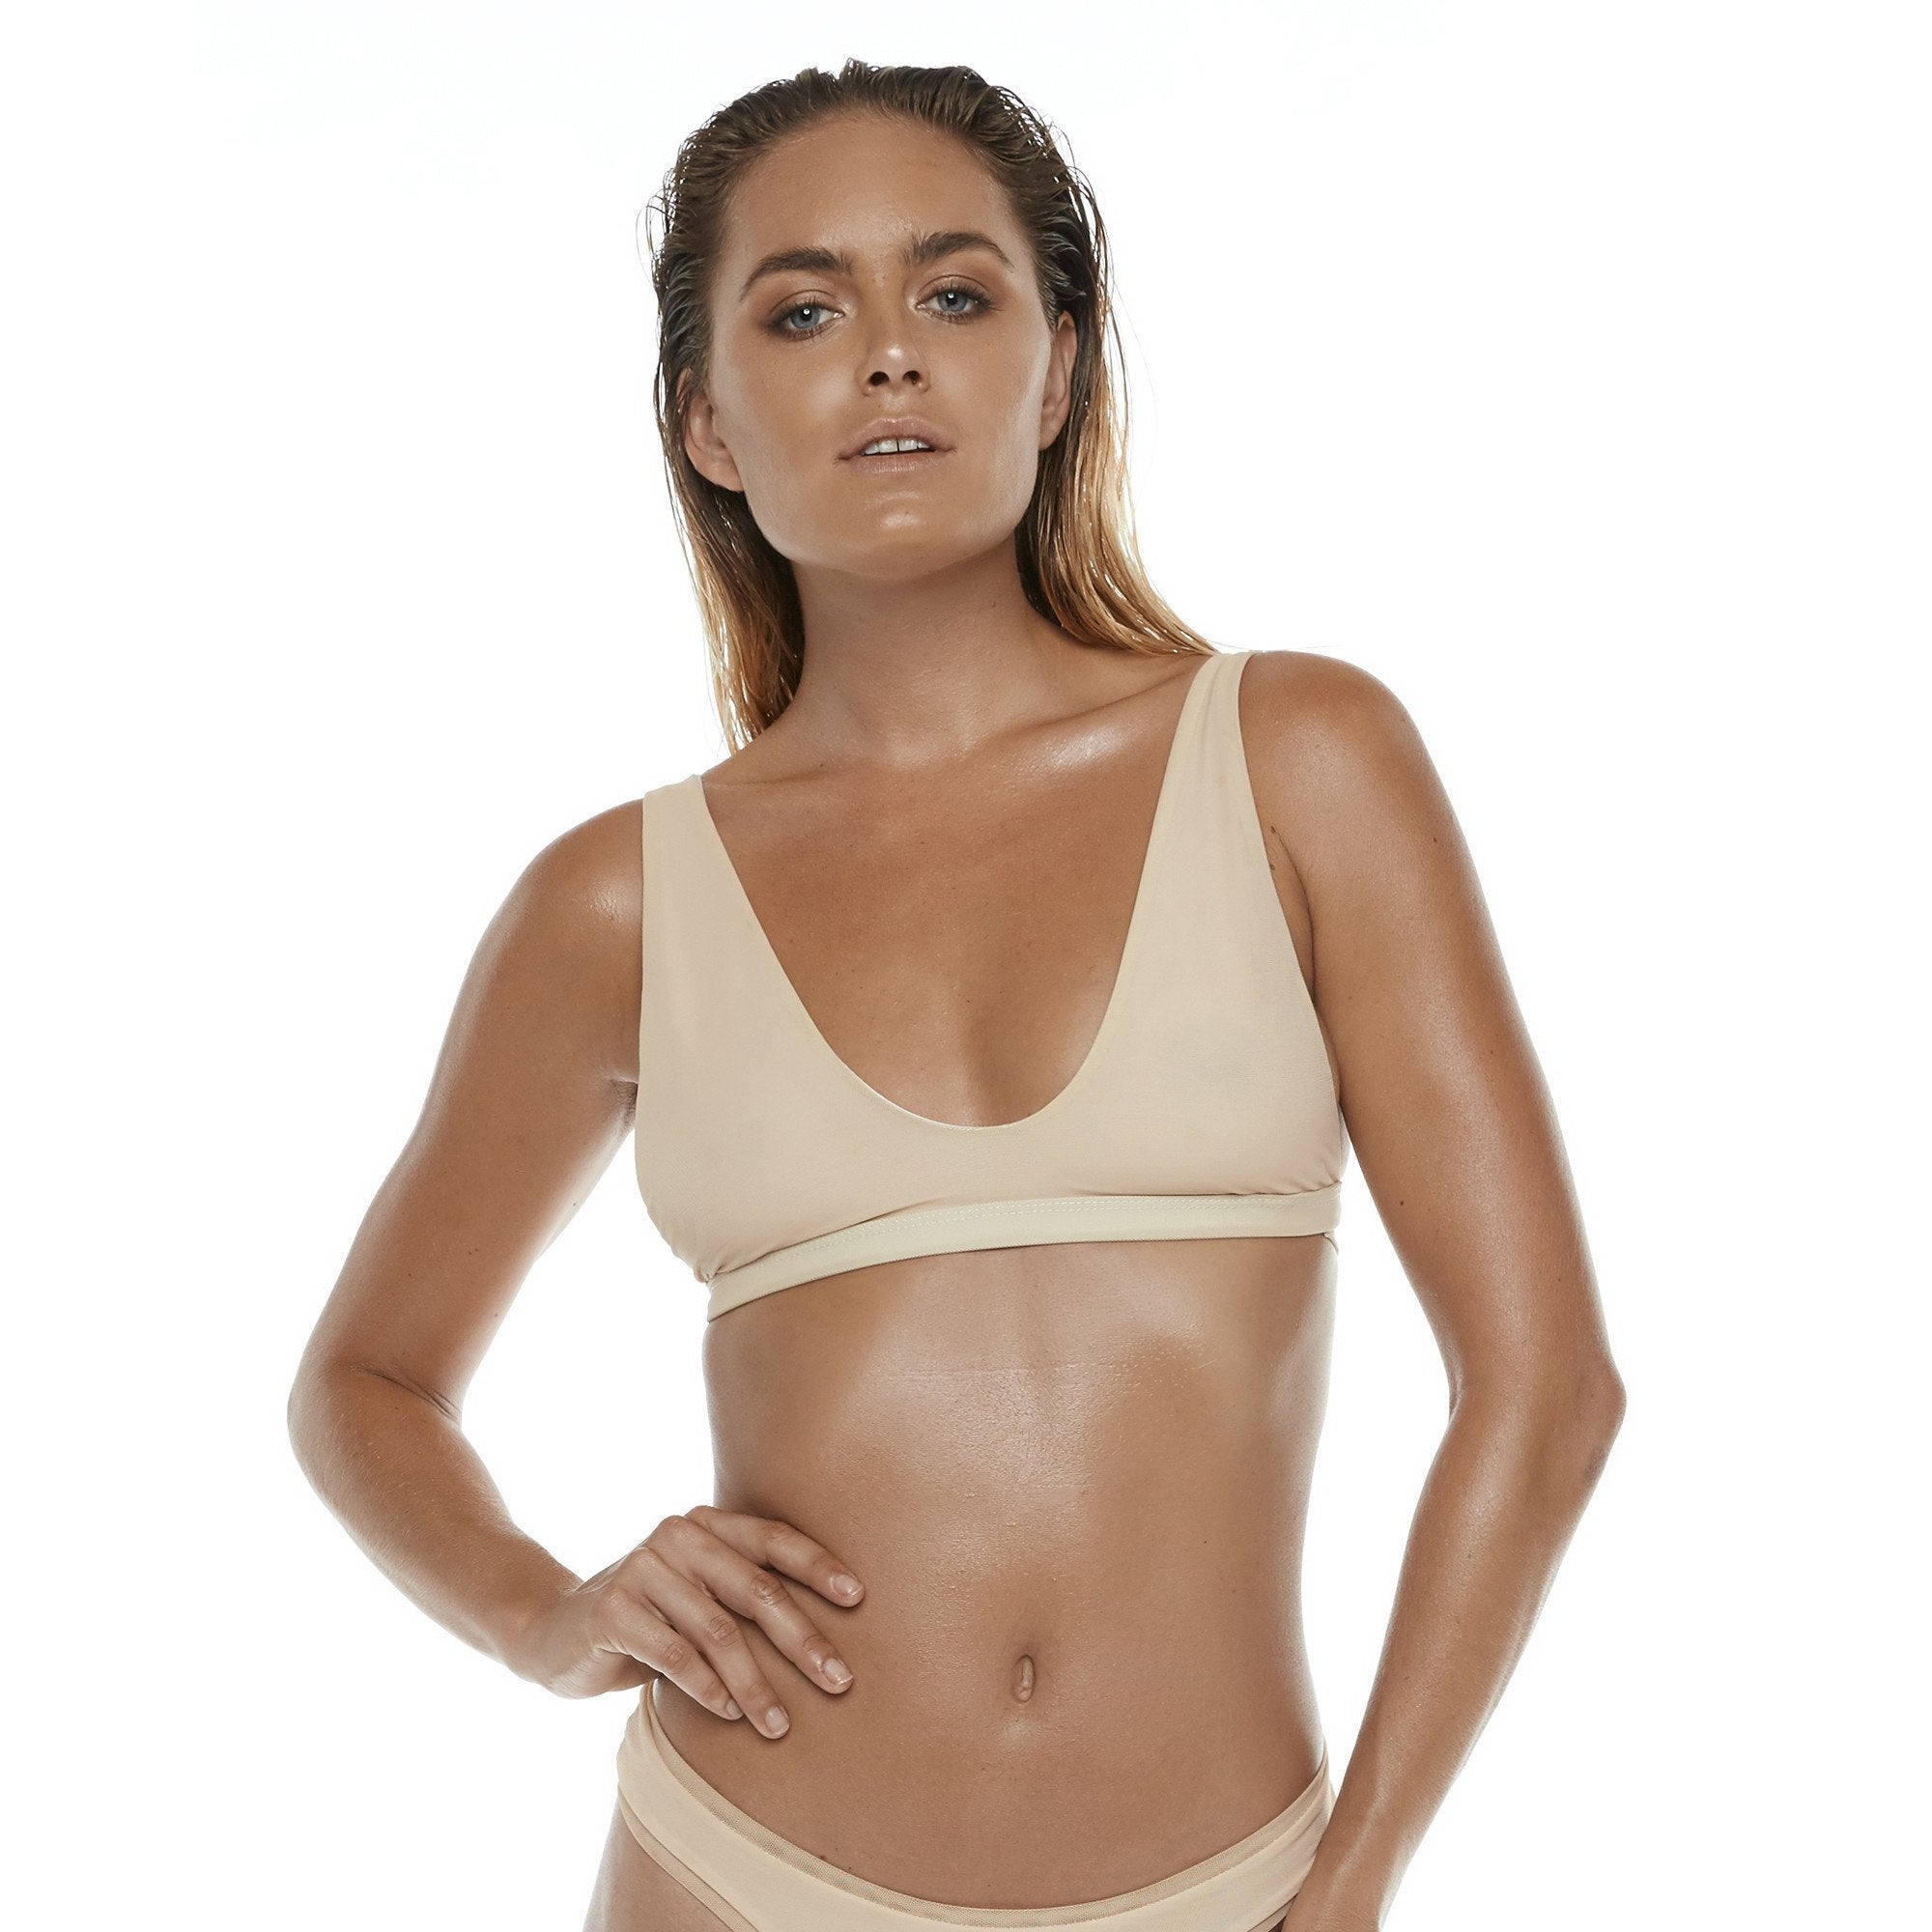 Apex Bra Nude Mesh-ALLERTON-HOUSE of BOTTA